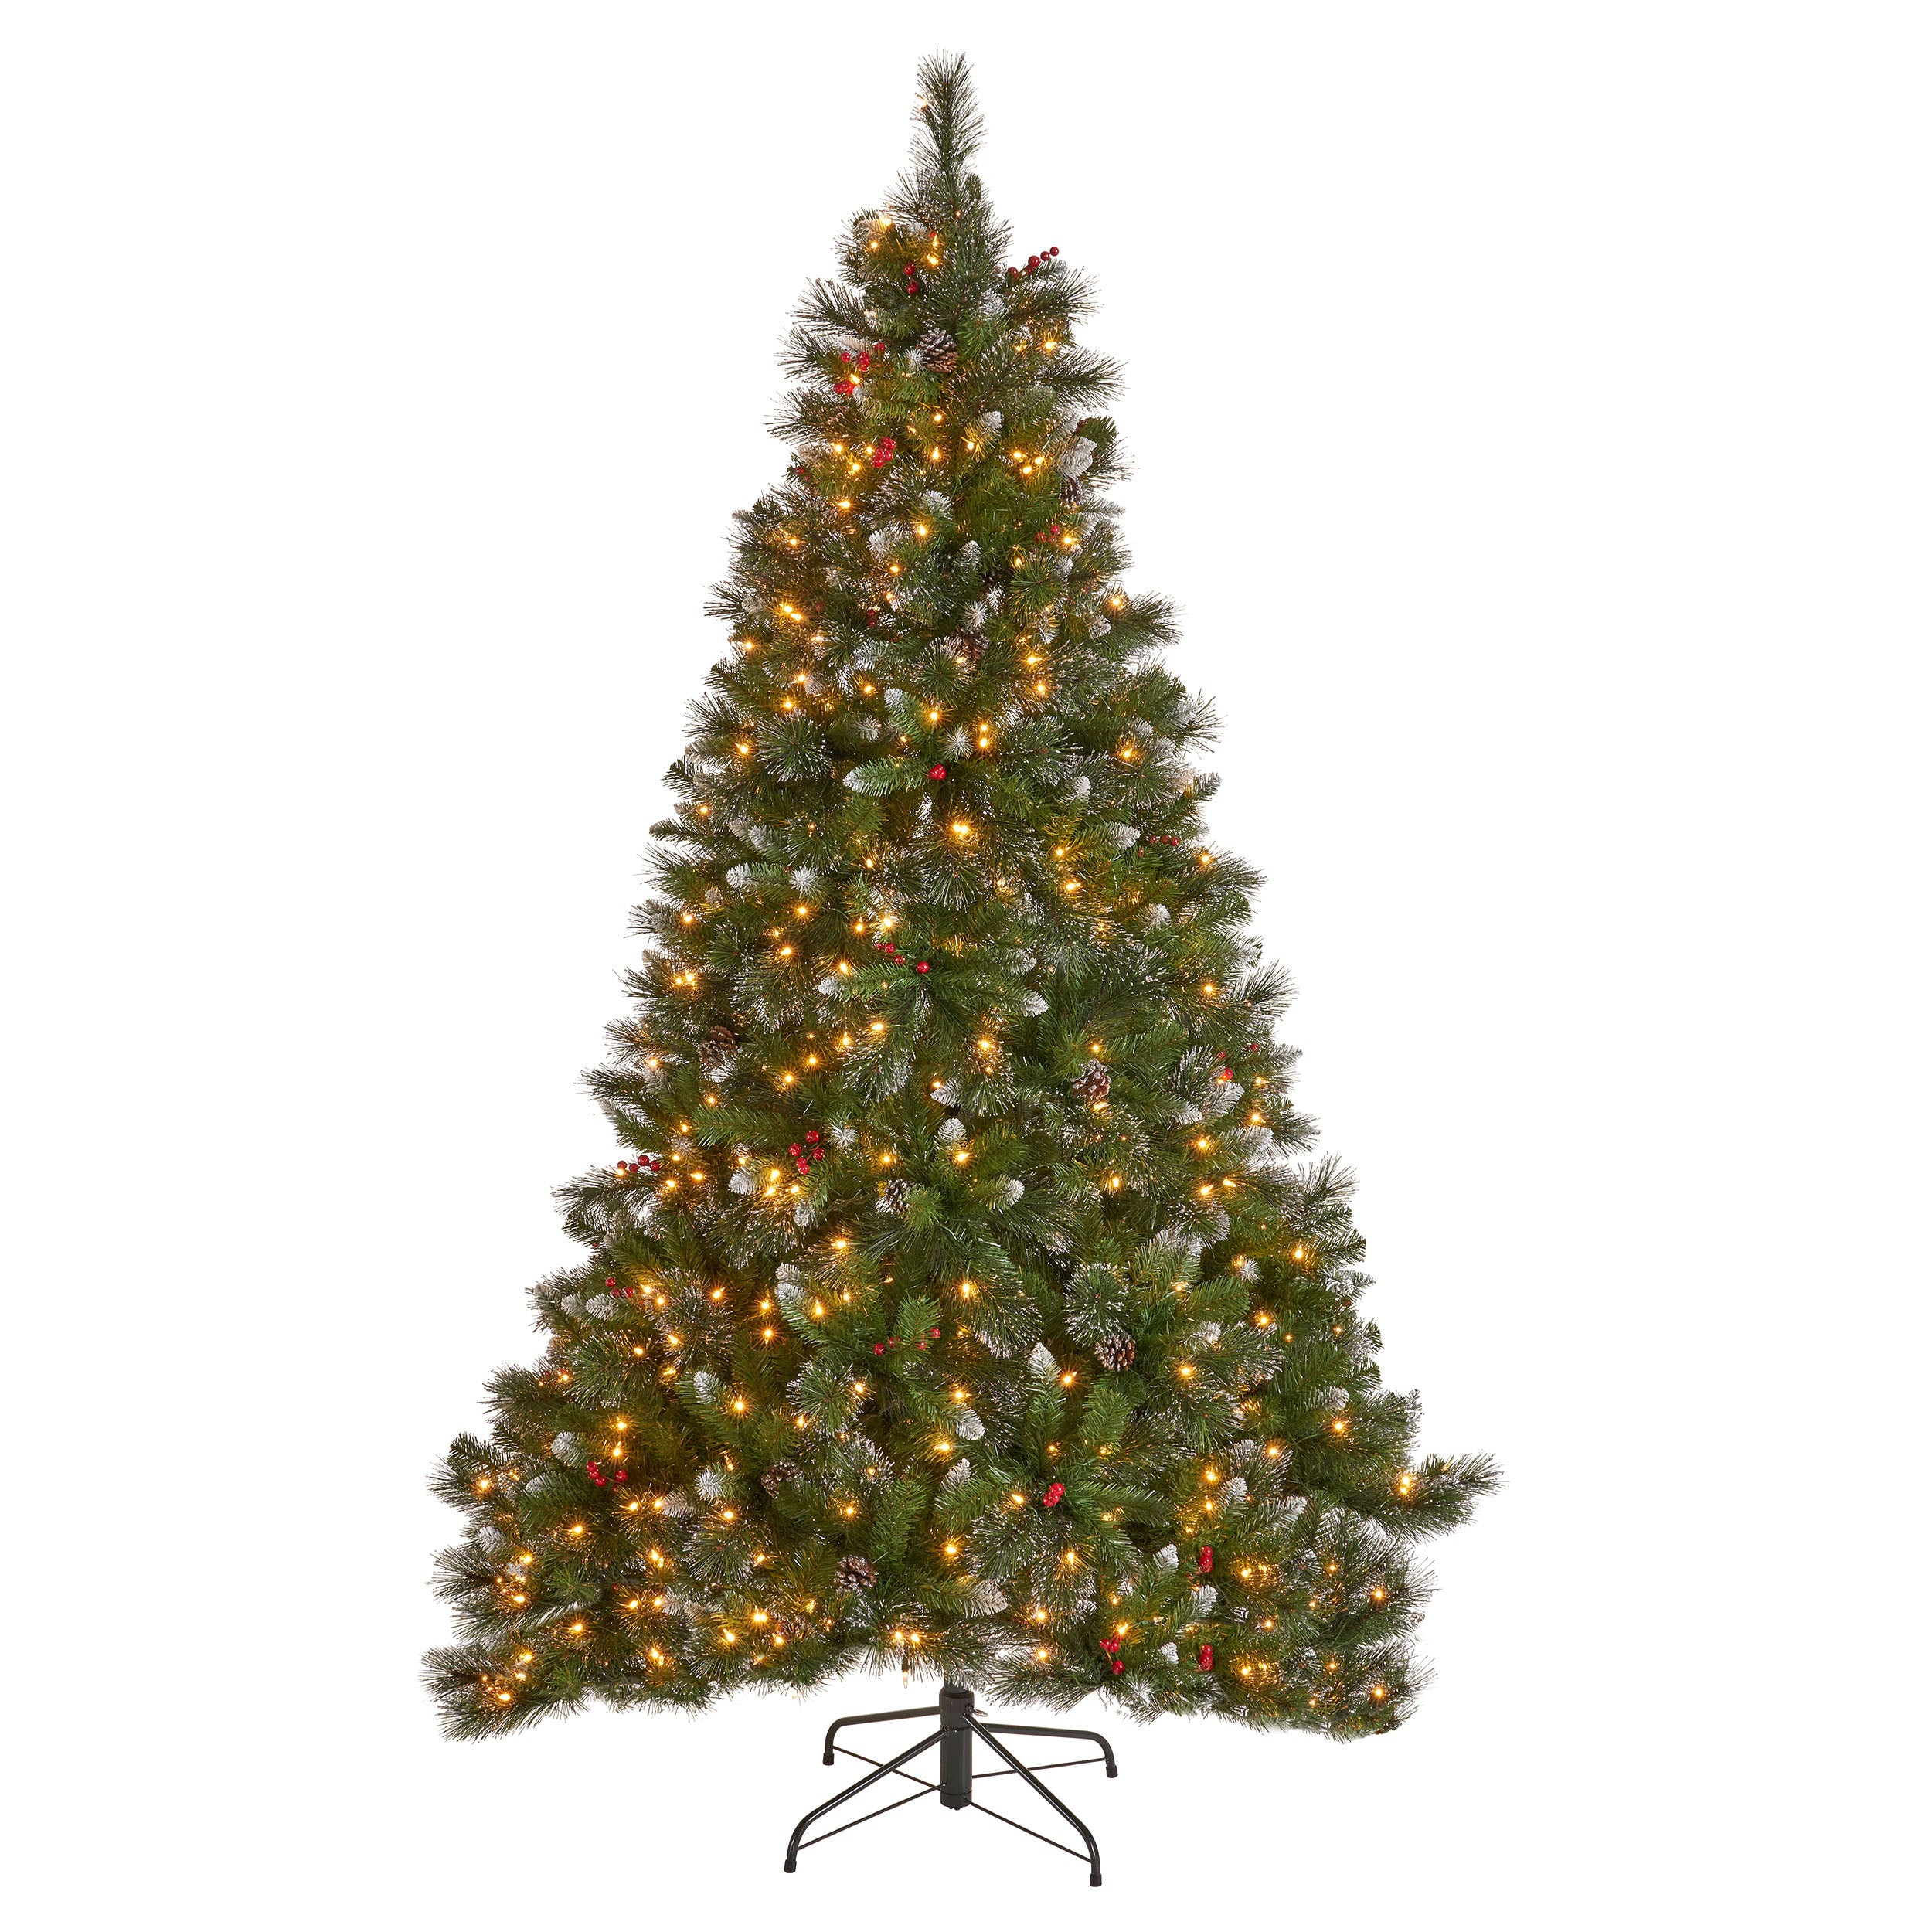 9 foot Mixed Spruce Hinged Artificial Christmas Tree with Glitter Branches Red Berries and Pinecones Clear Lights